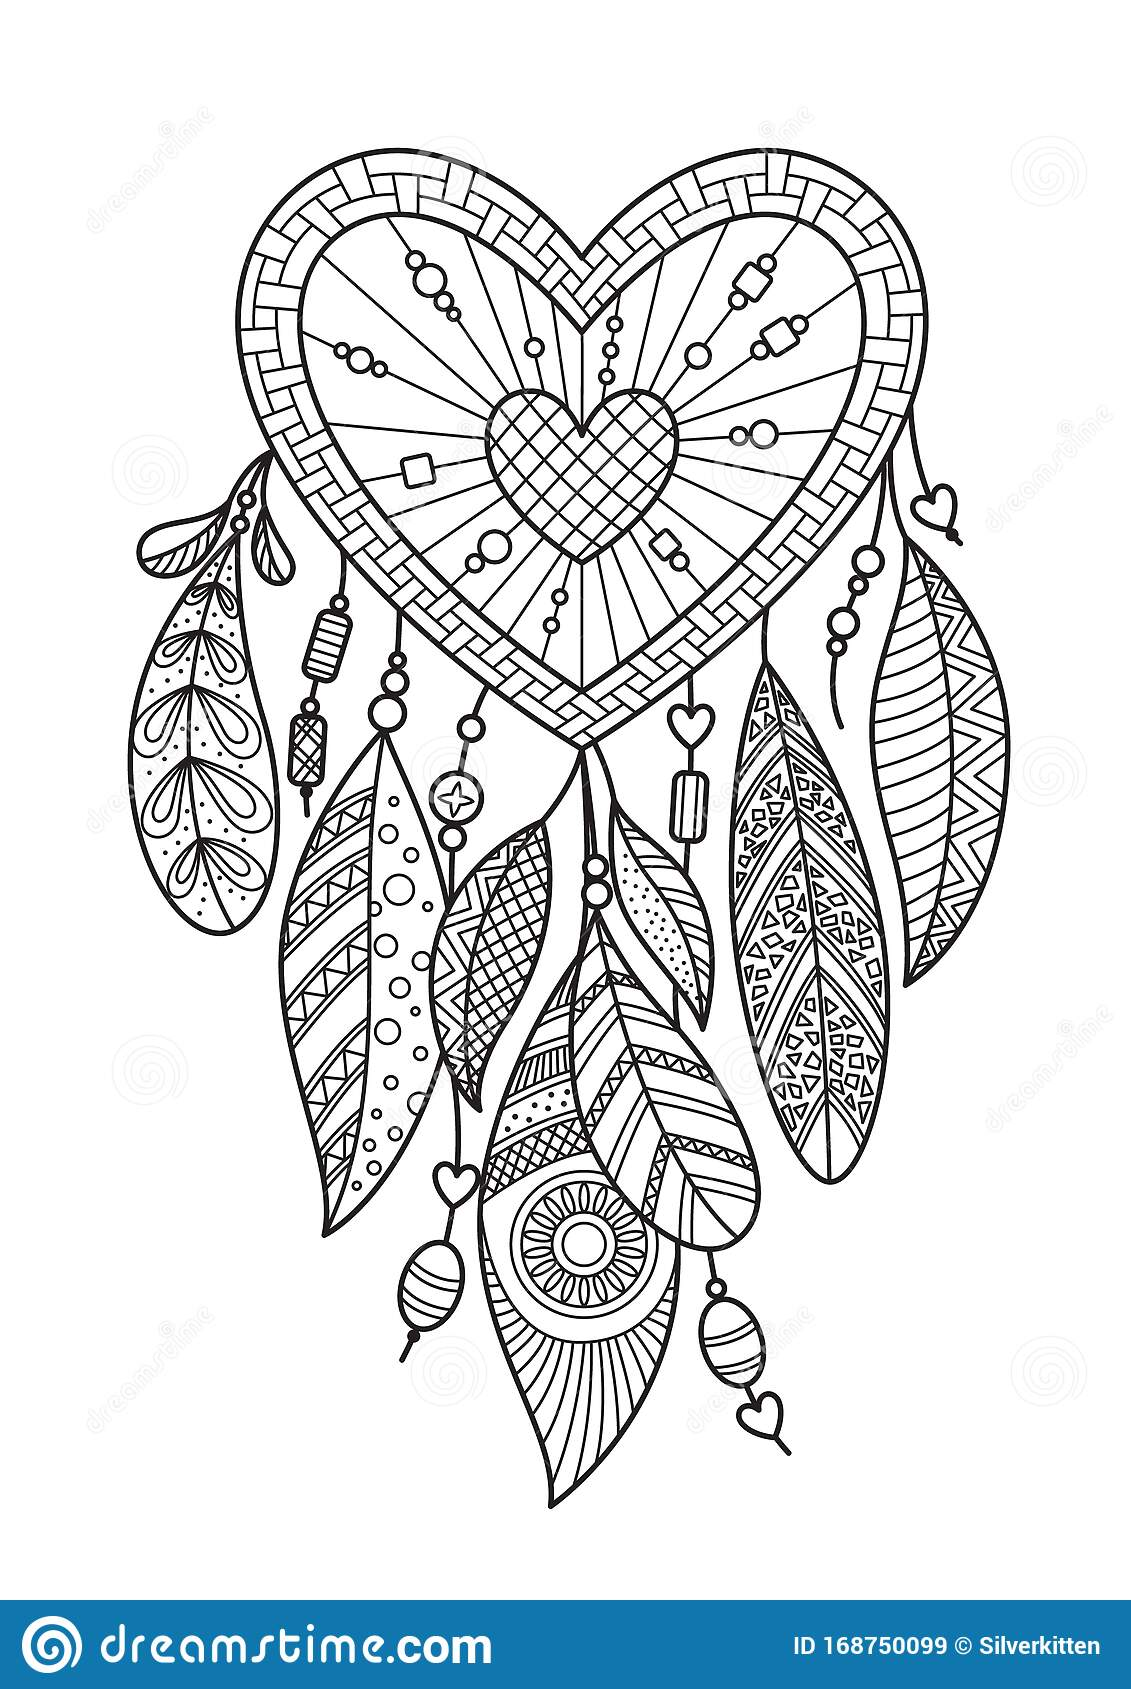 Dream Catcher Coloring Pages - Best Coloring Pages For Kids | 1689x1131